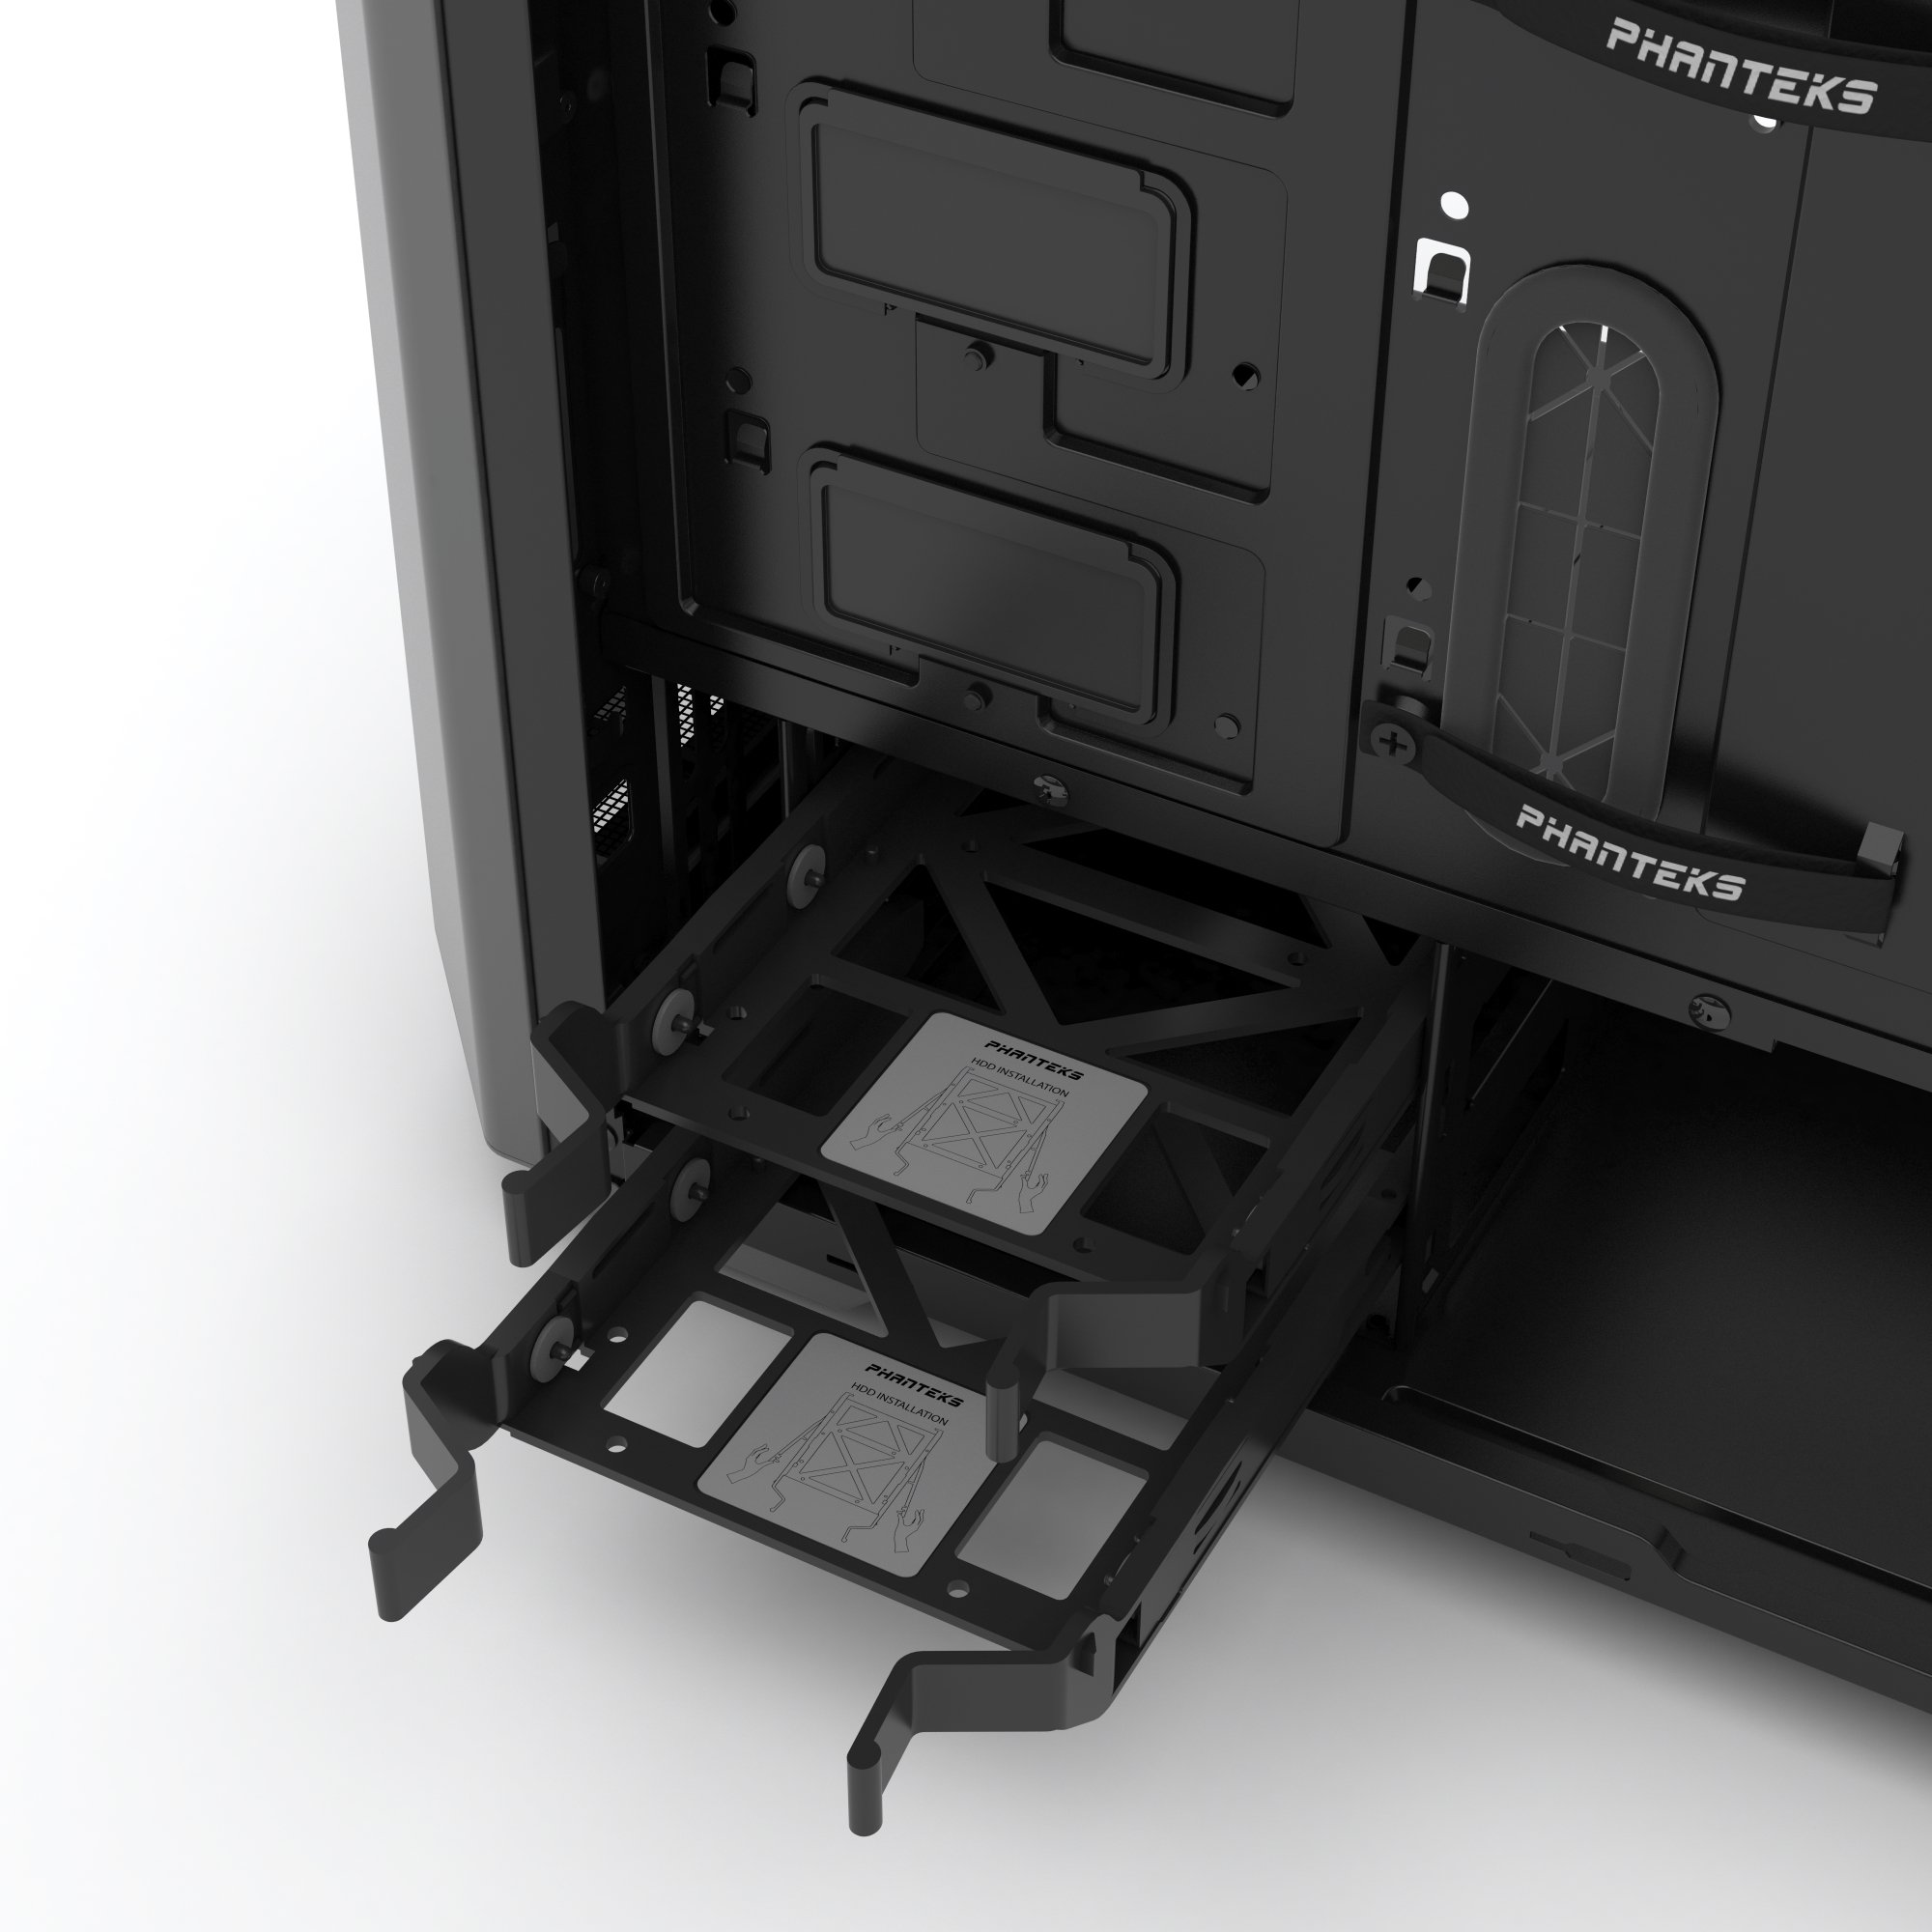 Phanteks PH-EC416PSTG_AG Eclipse P400S Silent Edition with Tempered Glass, Anthracite Grey Cases by Phanteks (Image #15)